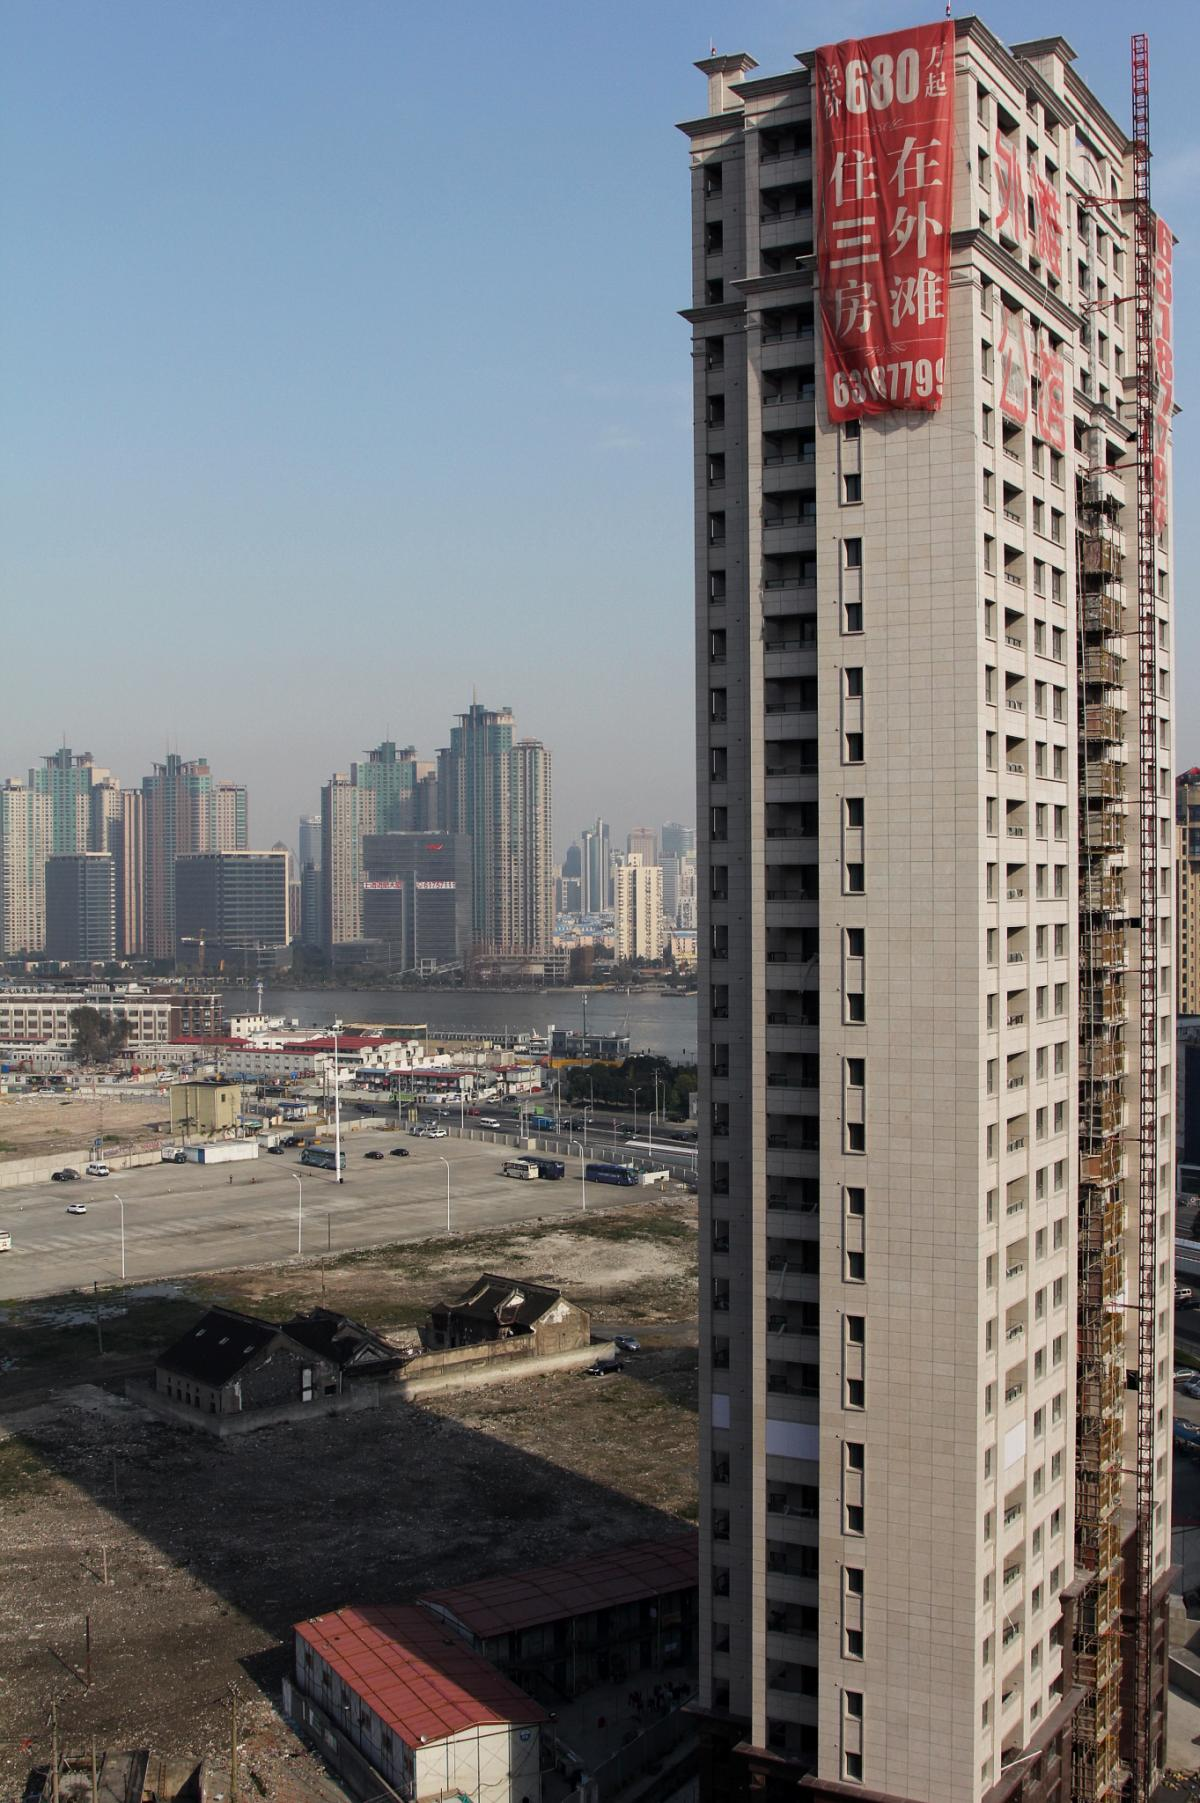 A luxury apartment tower rises near Shanghai's Huangpu River. Chen, an underground Christian who has sent his family to Los Angeles, hopes his home will be knocked down to make way for buildings like this one across the street, so Chen can use the compens